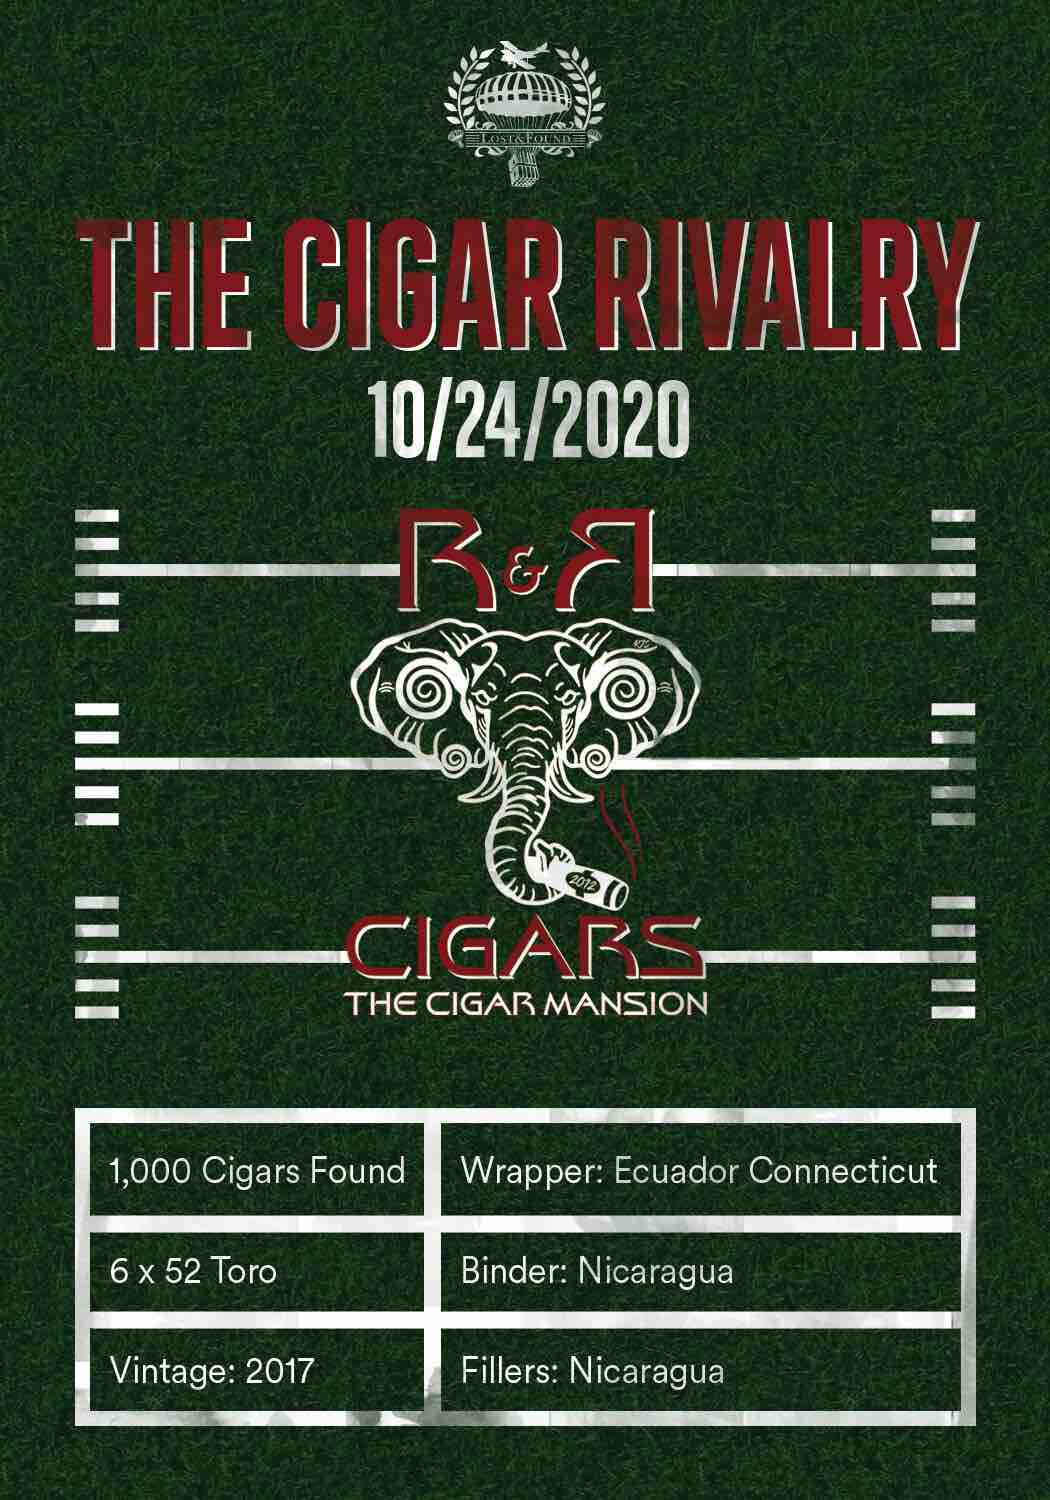 """Cigar News: Lost & Found """"The Cigar Rivalry"""" Coming to R & R Cigar Mansion for 2020 Alabama – Tennessee Game"""